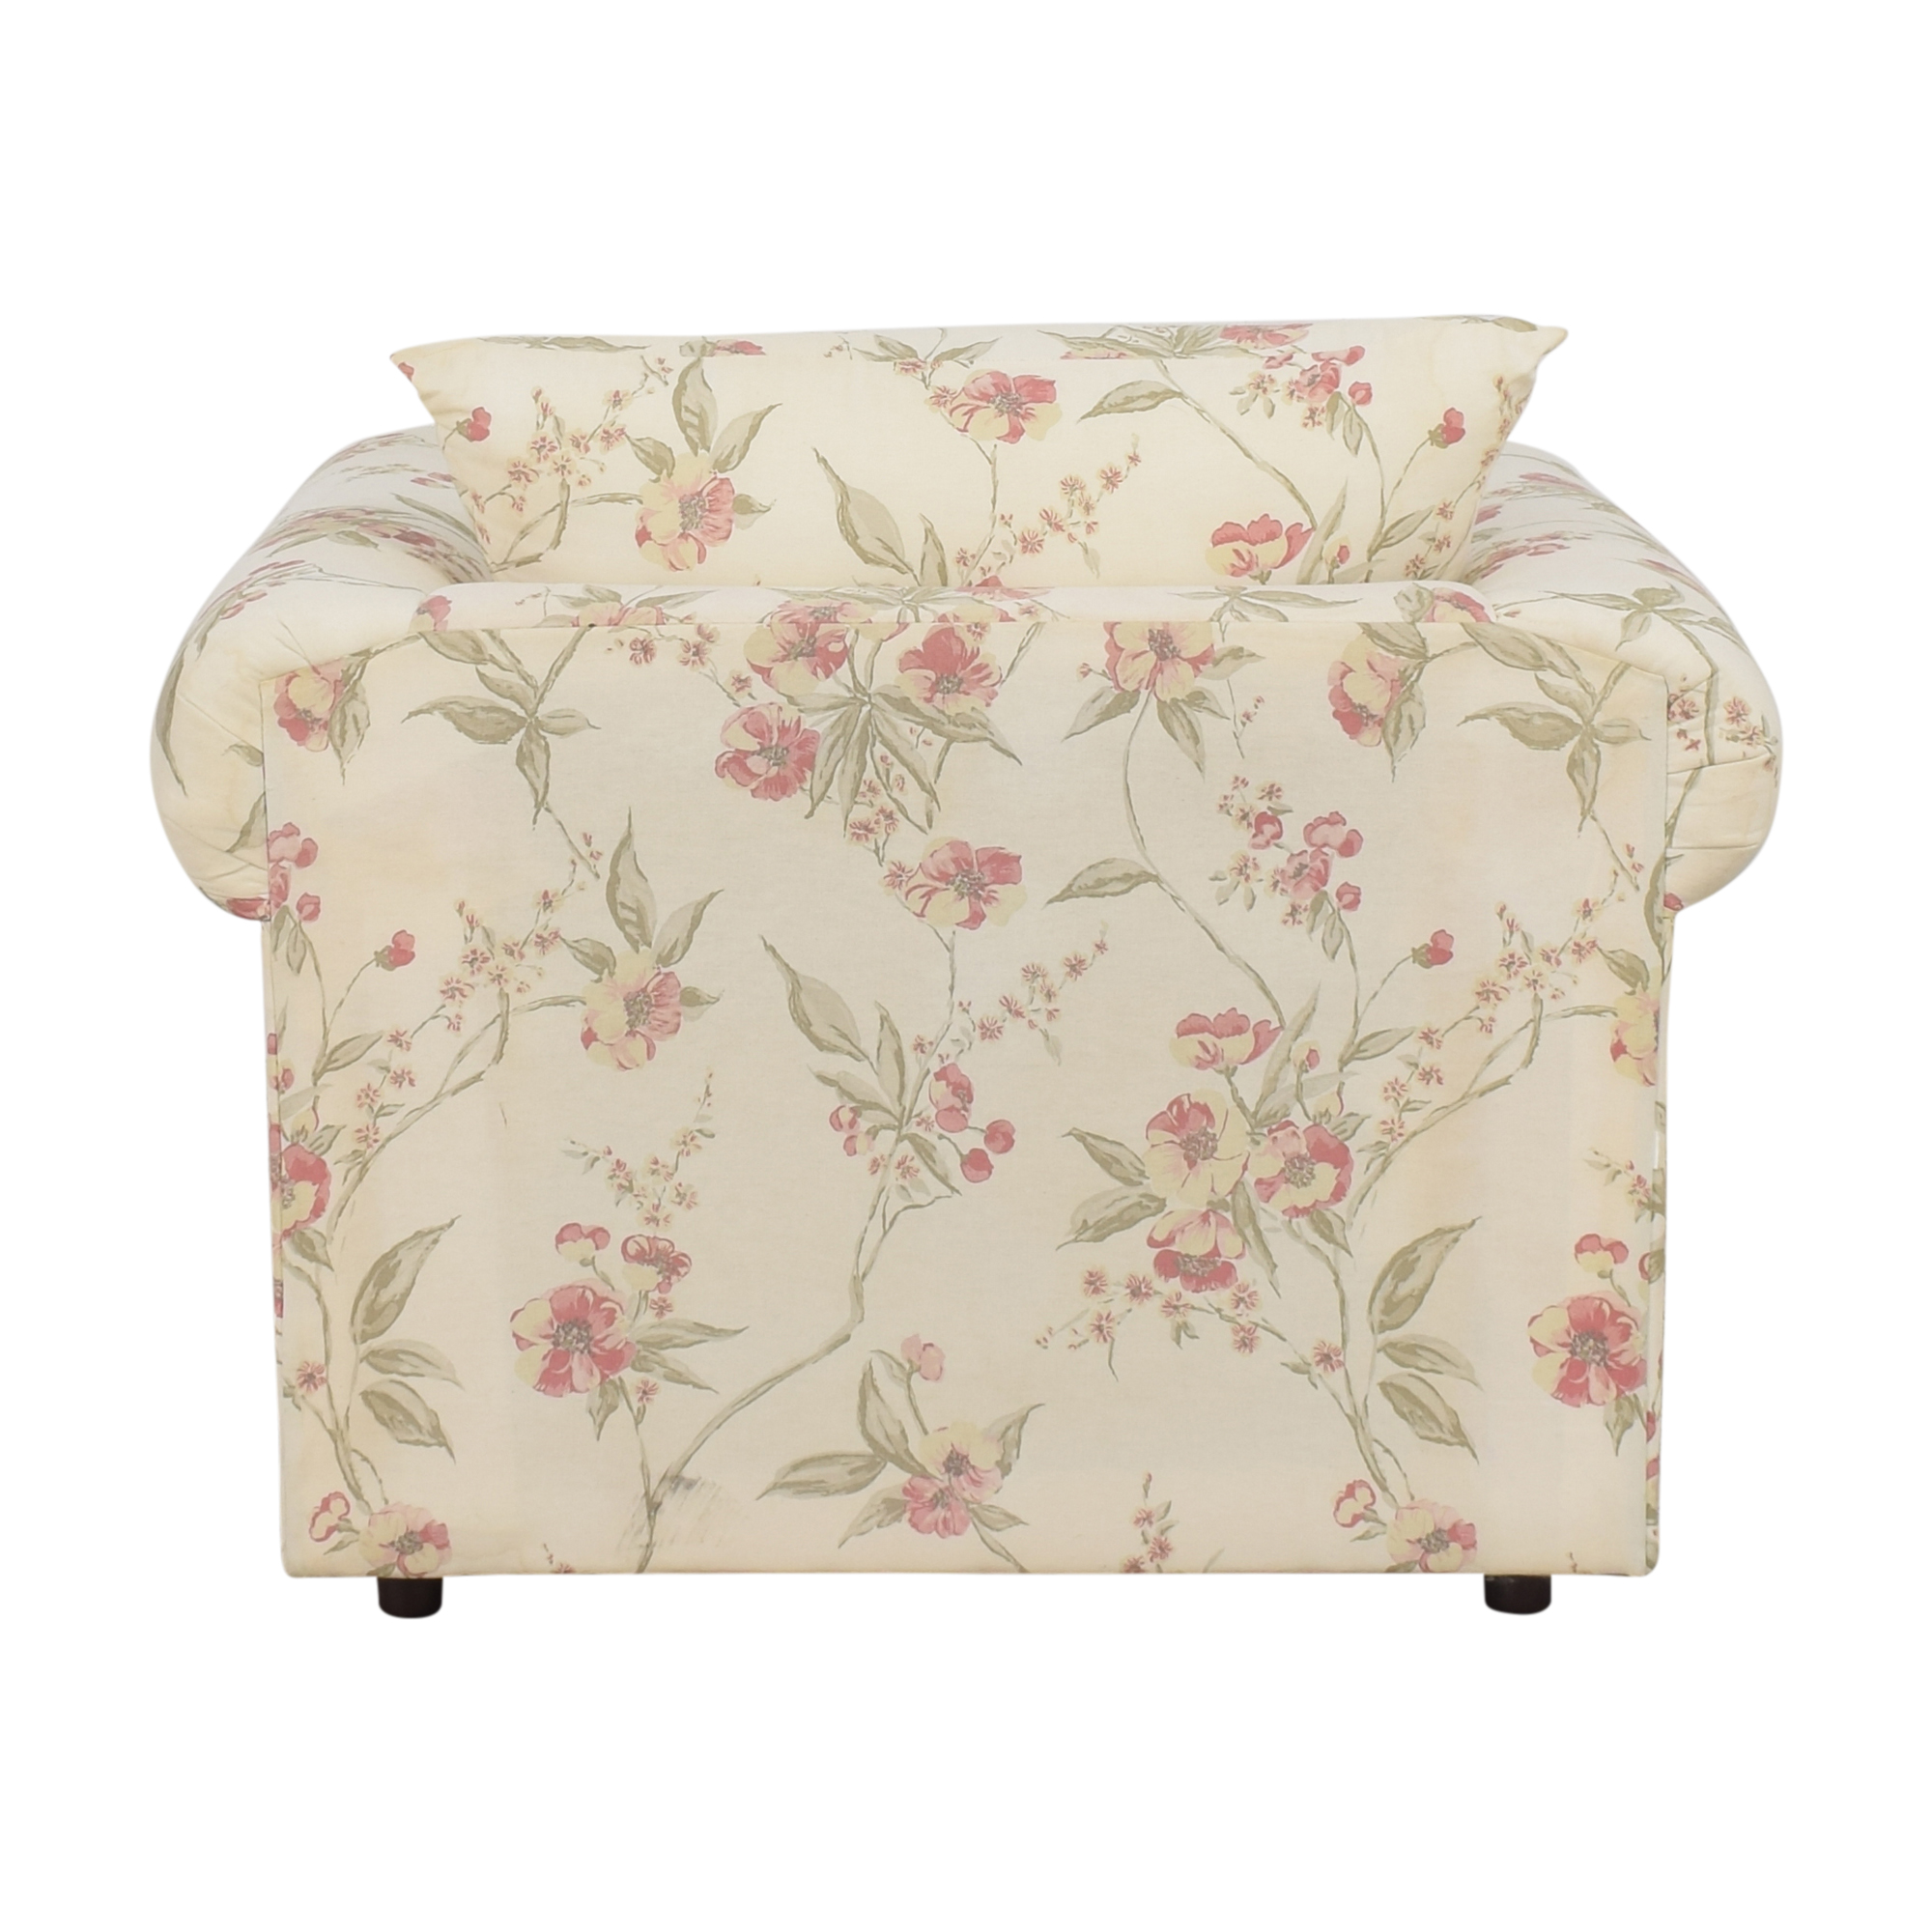 Ellis Home Furnishings Ellis Home Furnishings Floral Accent Chair used